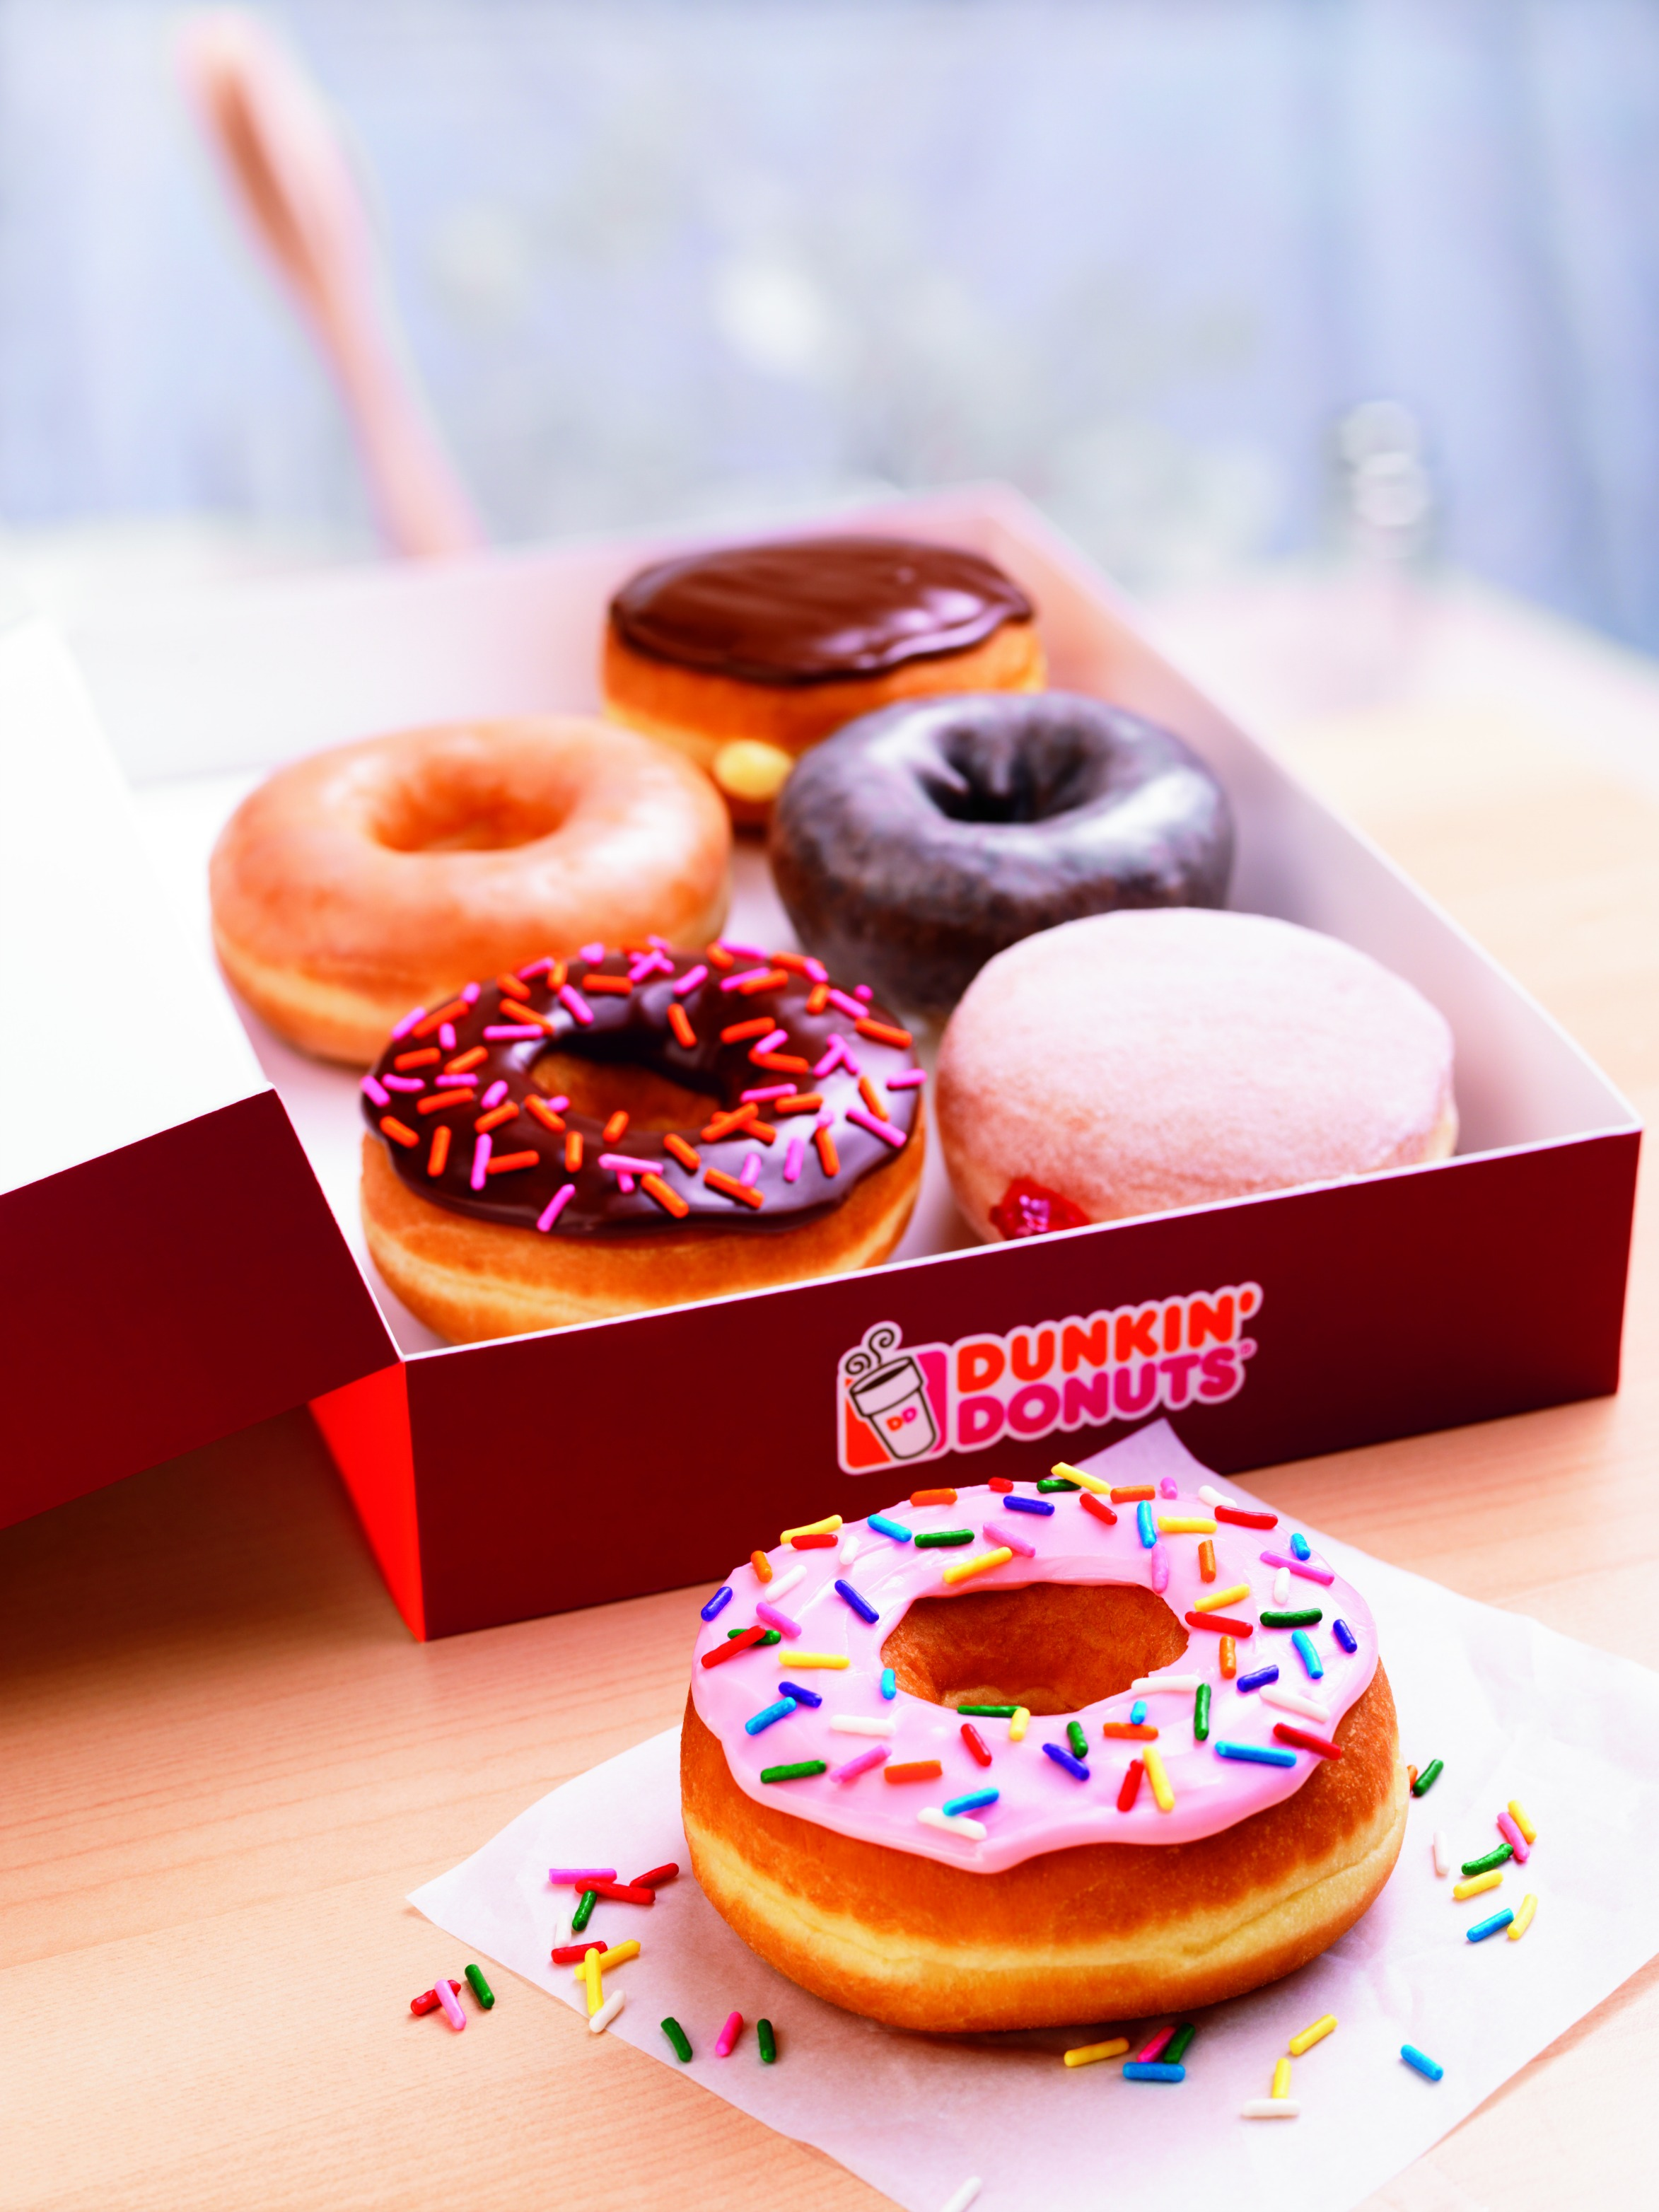 tqm of dunkin donuts A free inside look at dunkin' donuts salary trends 2,165 salaries for 243 jobs at dunkin' donuts salaries posted anonymously by dunkin' donuts employees.